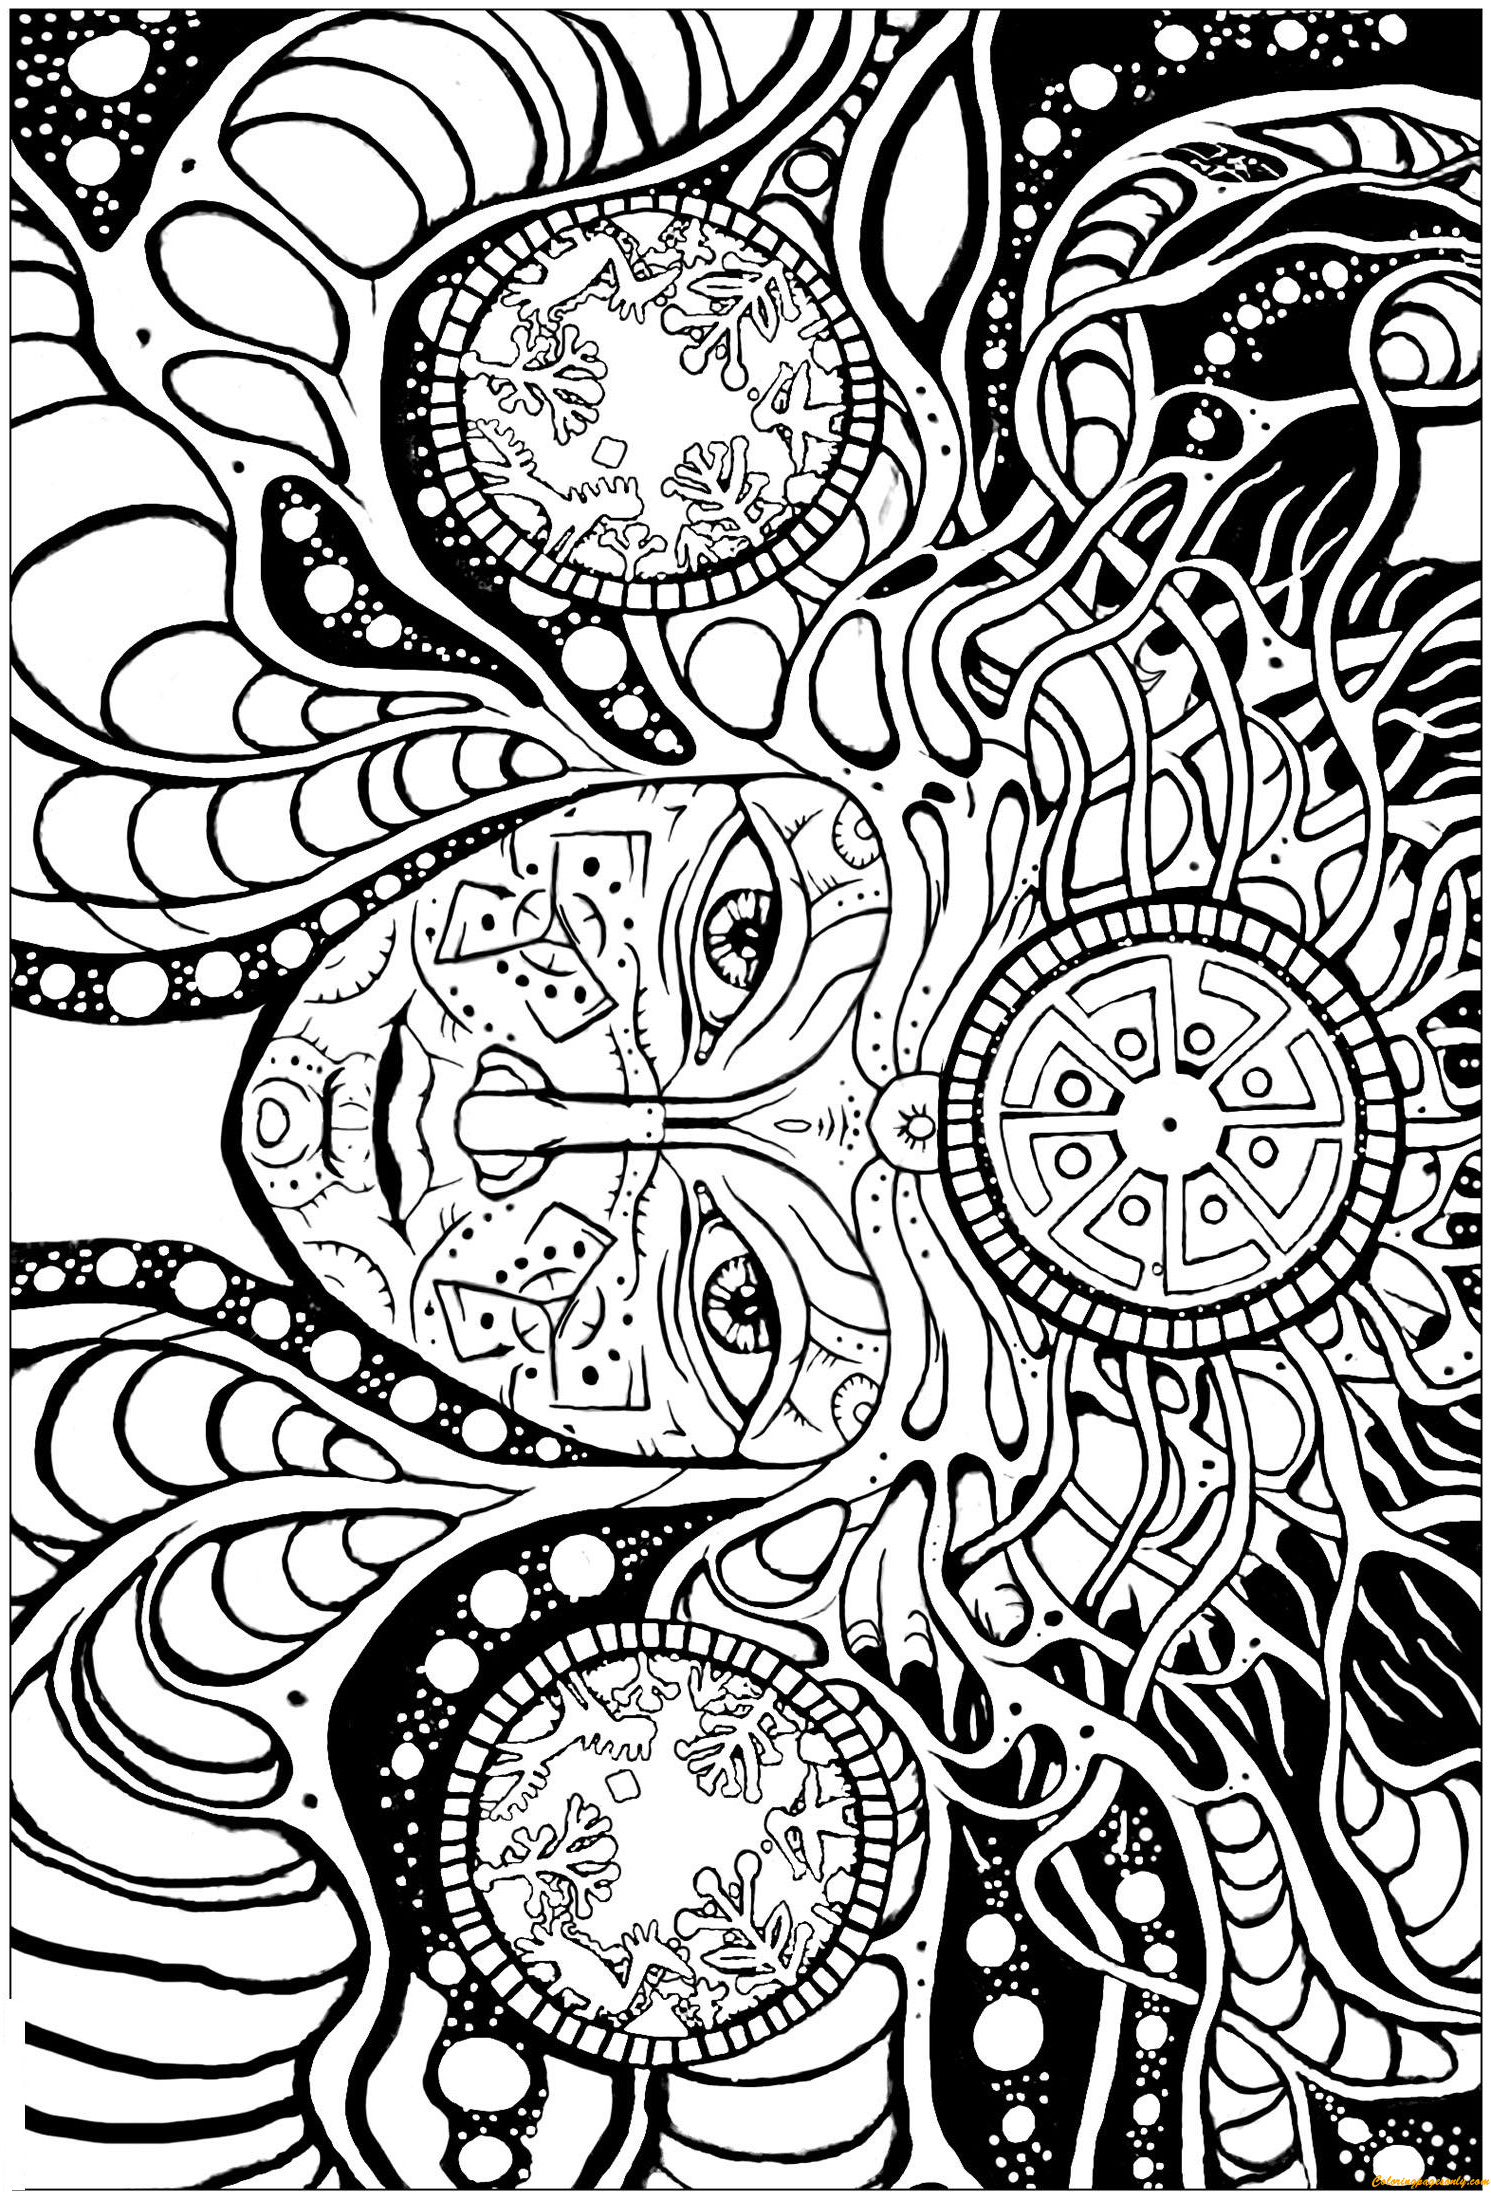 trippy coloring pages printable psychedelic coloring pages coloring home pages coloring printable trippy